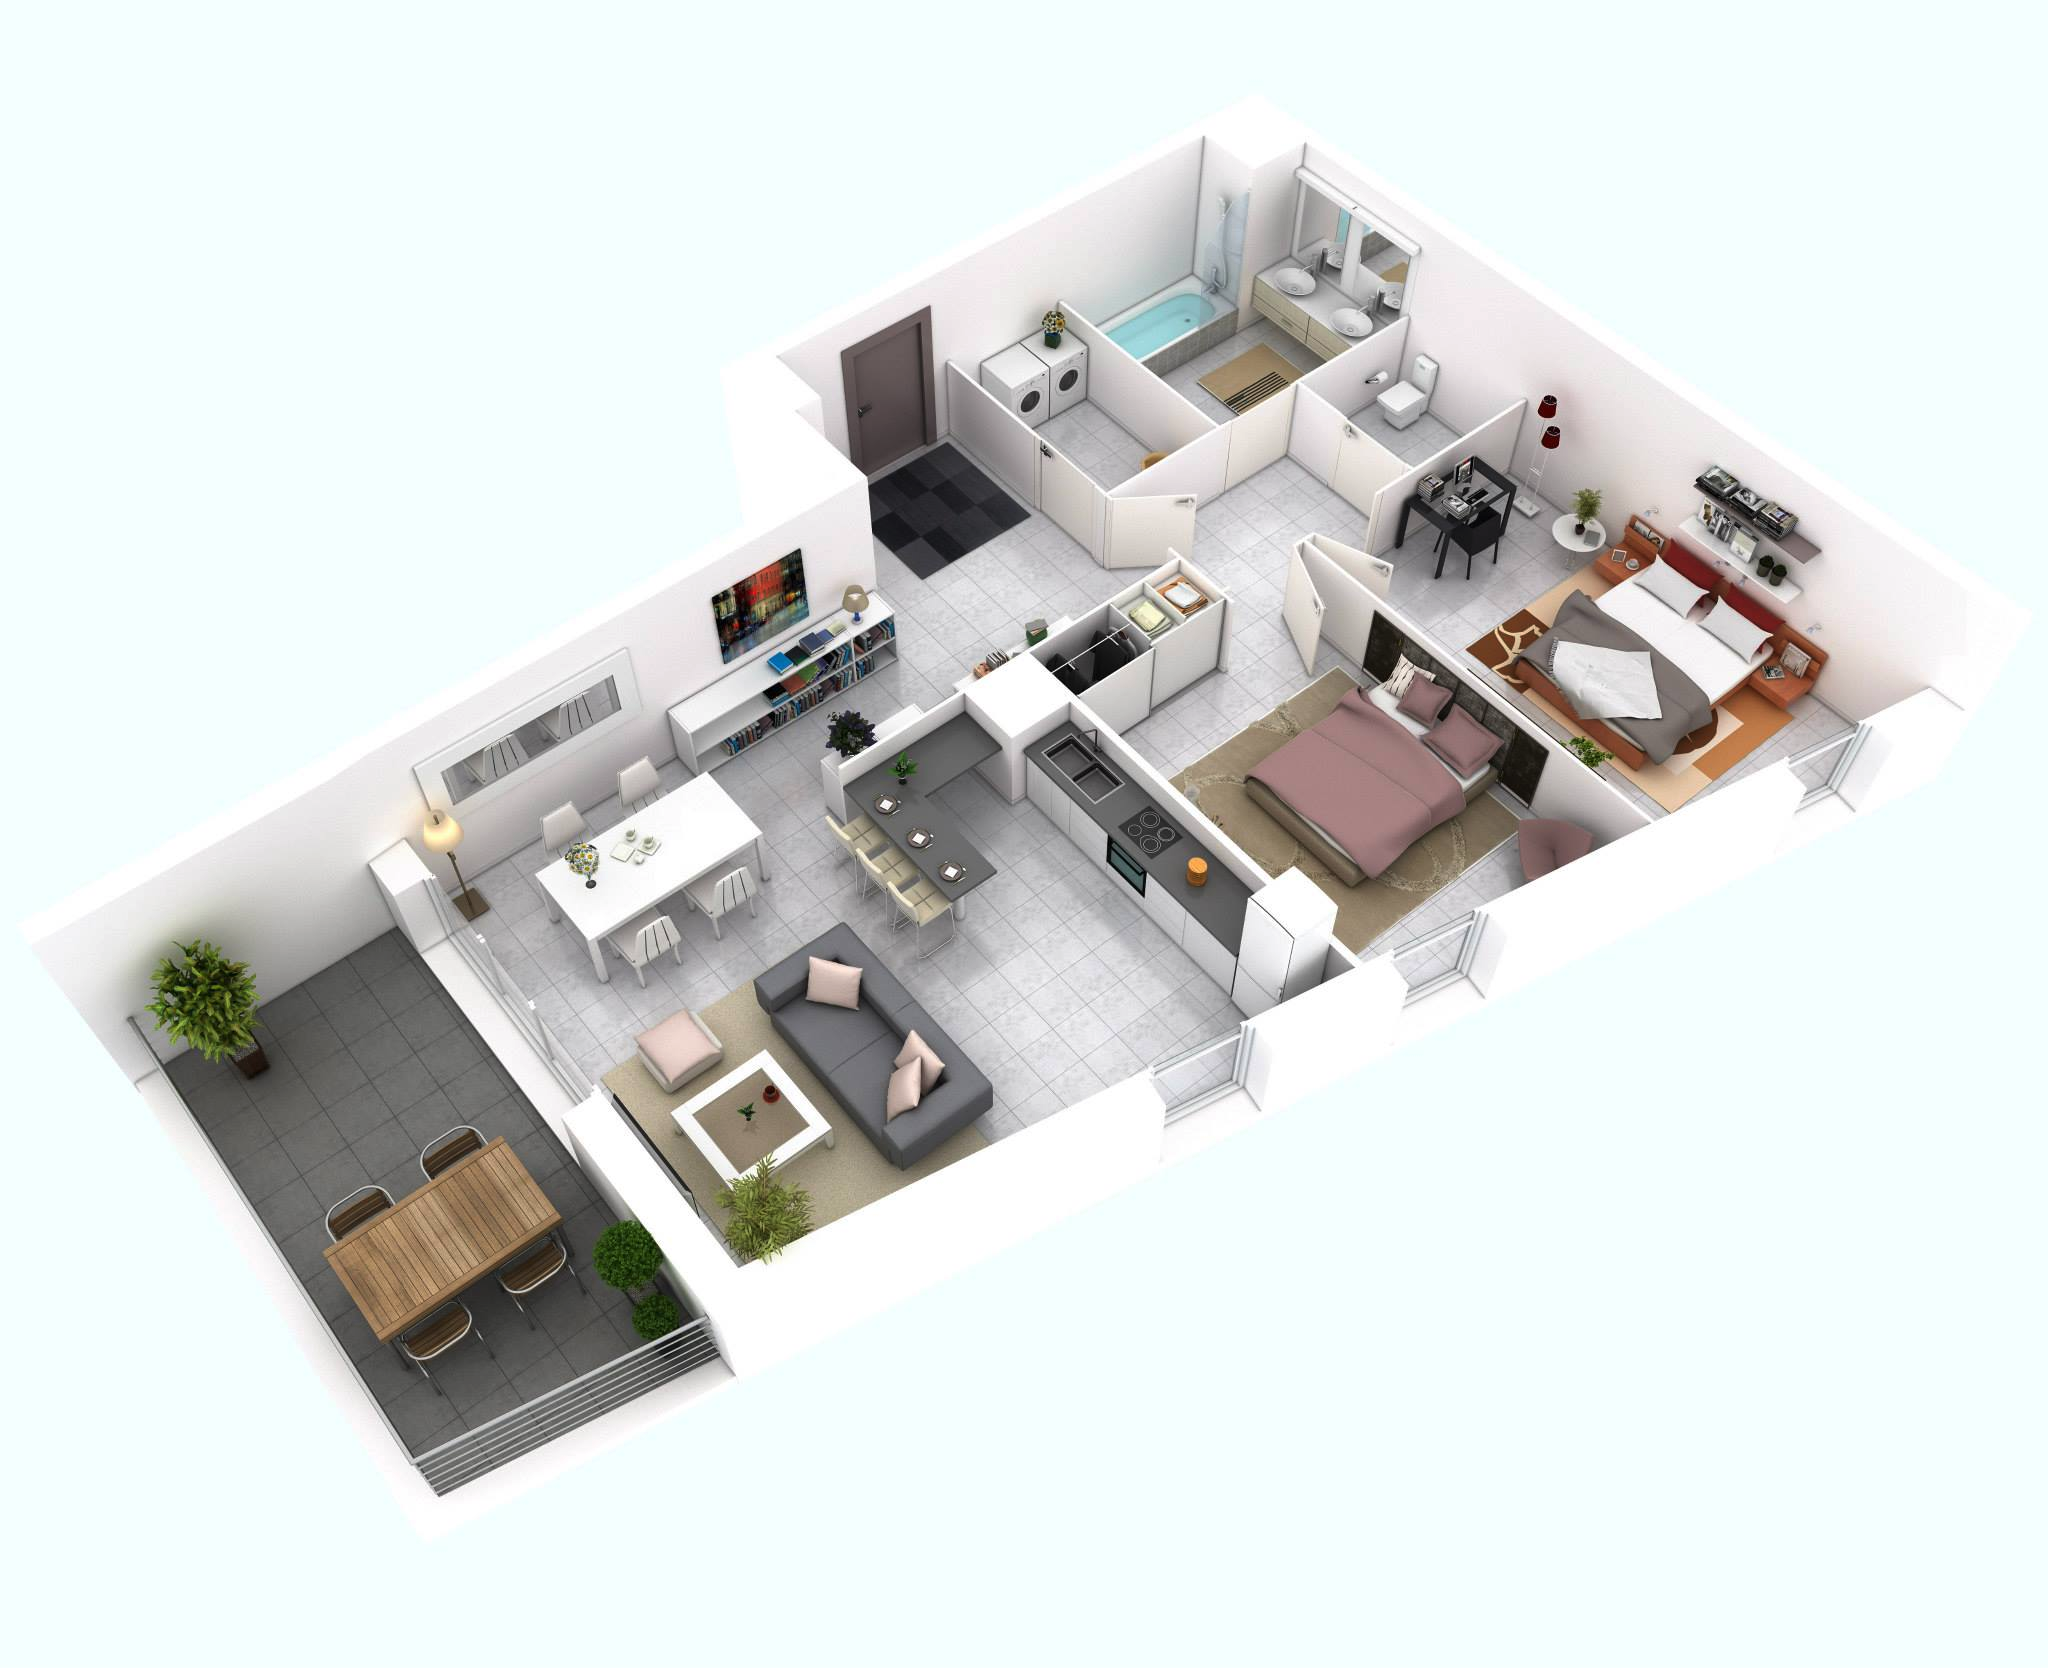 25 more 2 bedroom 3d floor plans - 3d Floor Planning